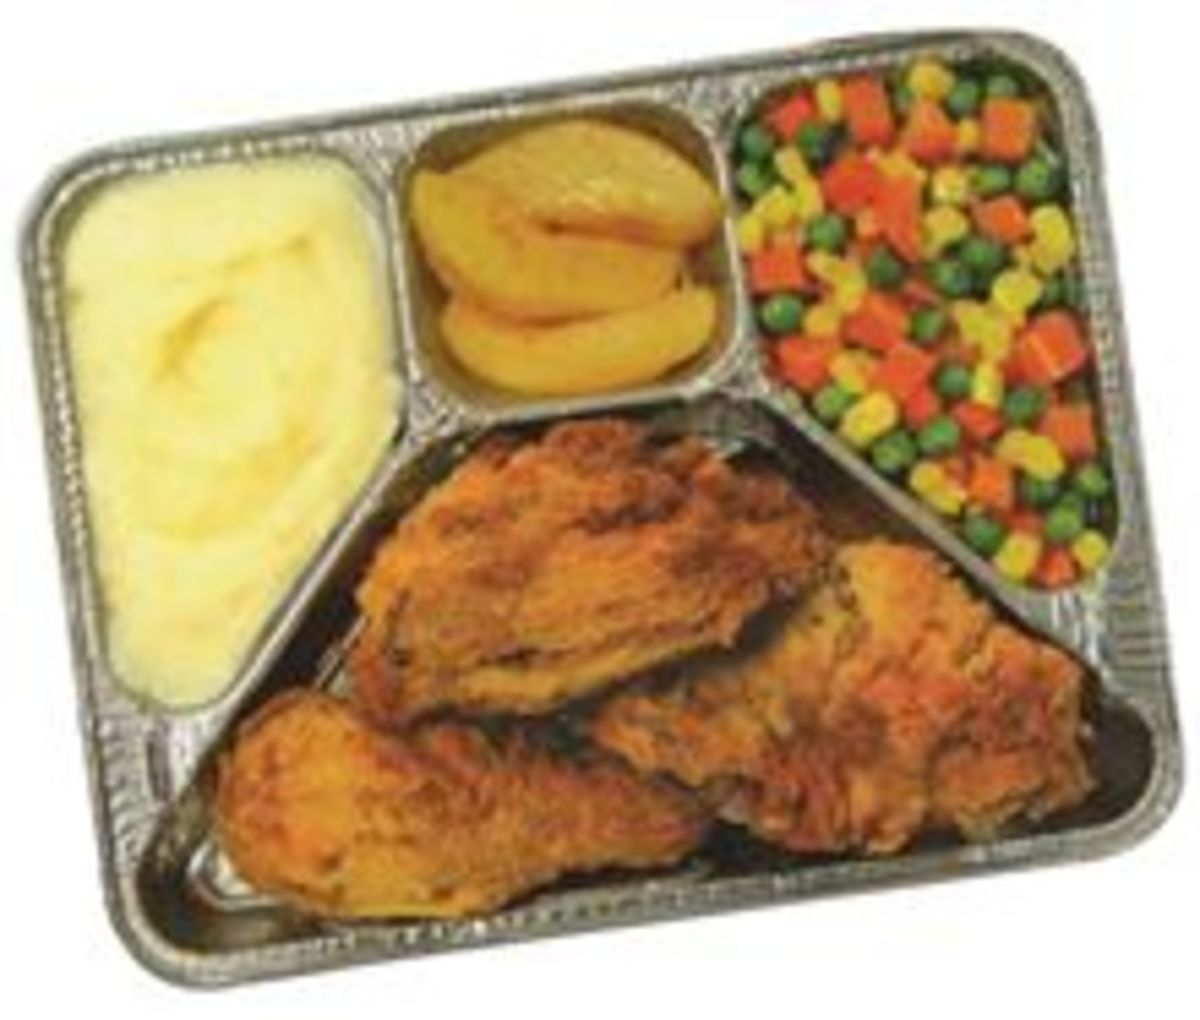 TV Dinners: The Golden Years